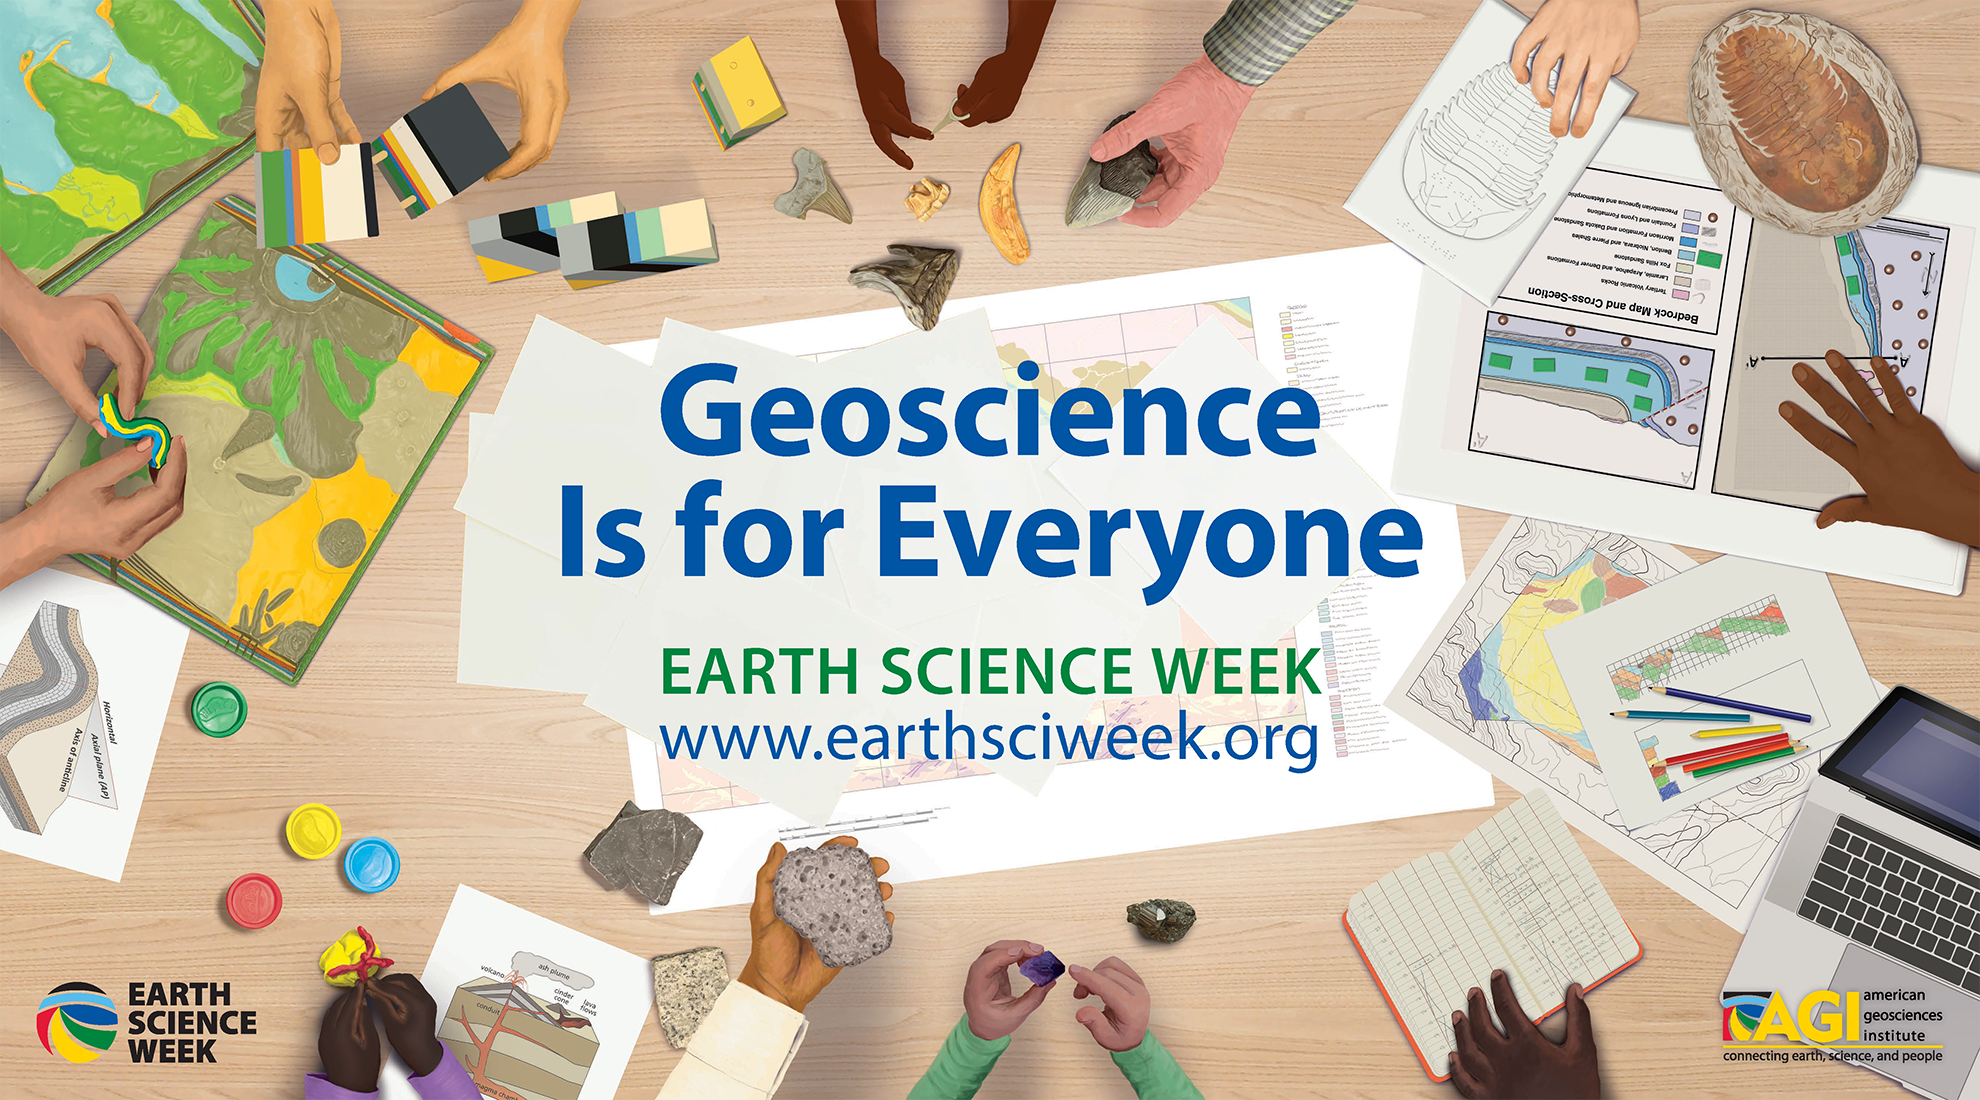 Earth Science Week 2019 Shareable